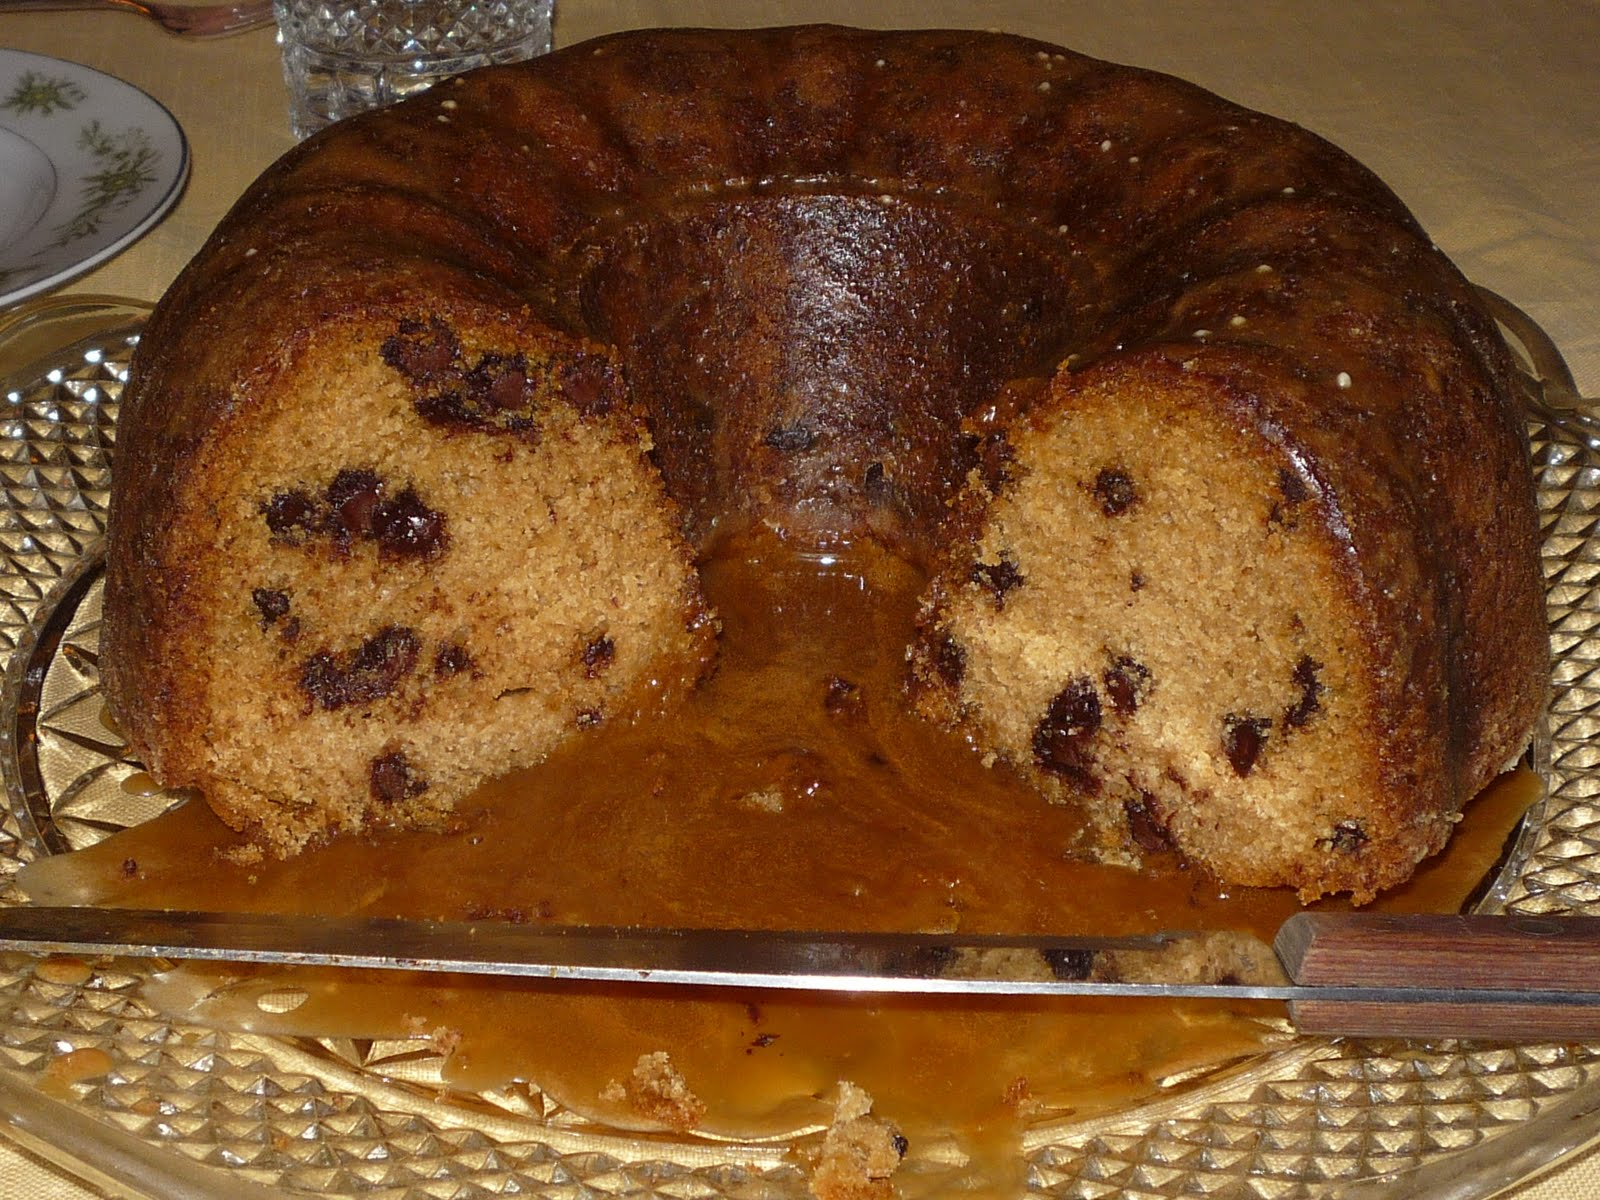 ... 66: Brown Sugar & Chocolate Chip Pound Cake with Maple Espresso Glaze